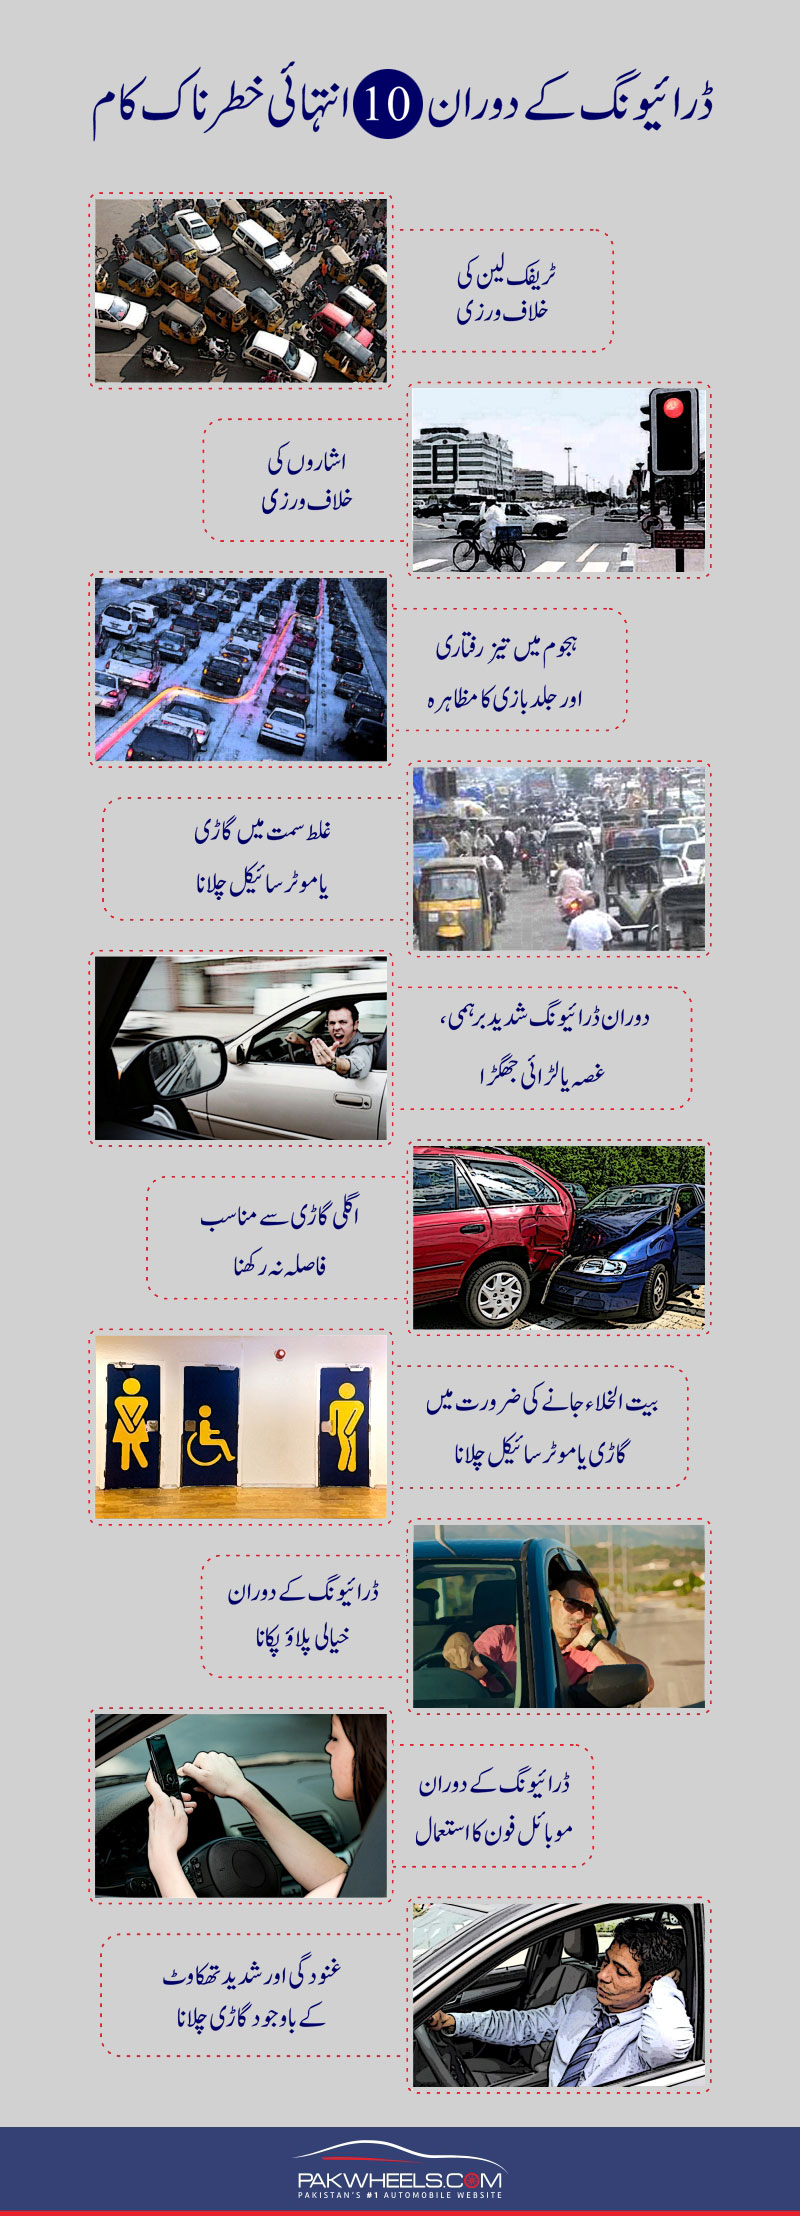 urdu-10-Thing-that-can-be-dangerous-while-driving